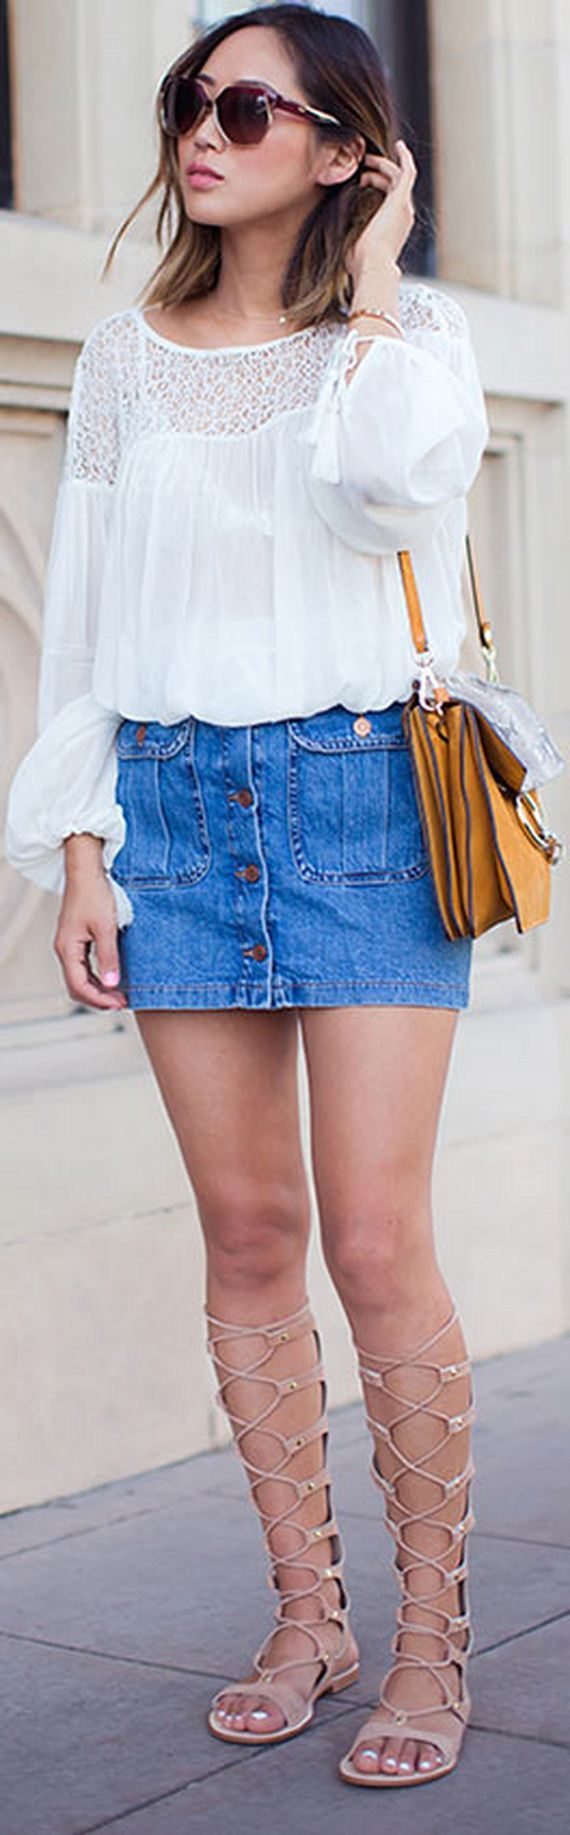 21-Cute-Summer-Outfits